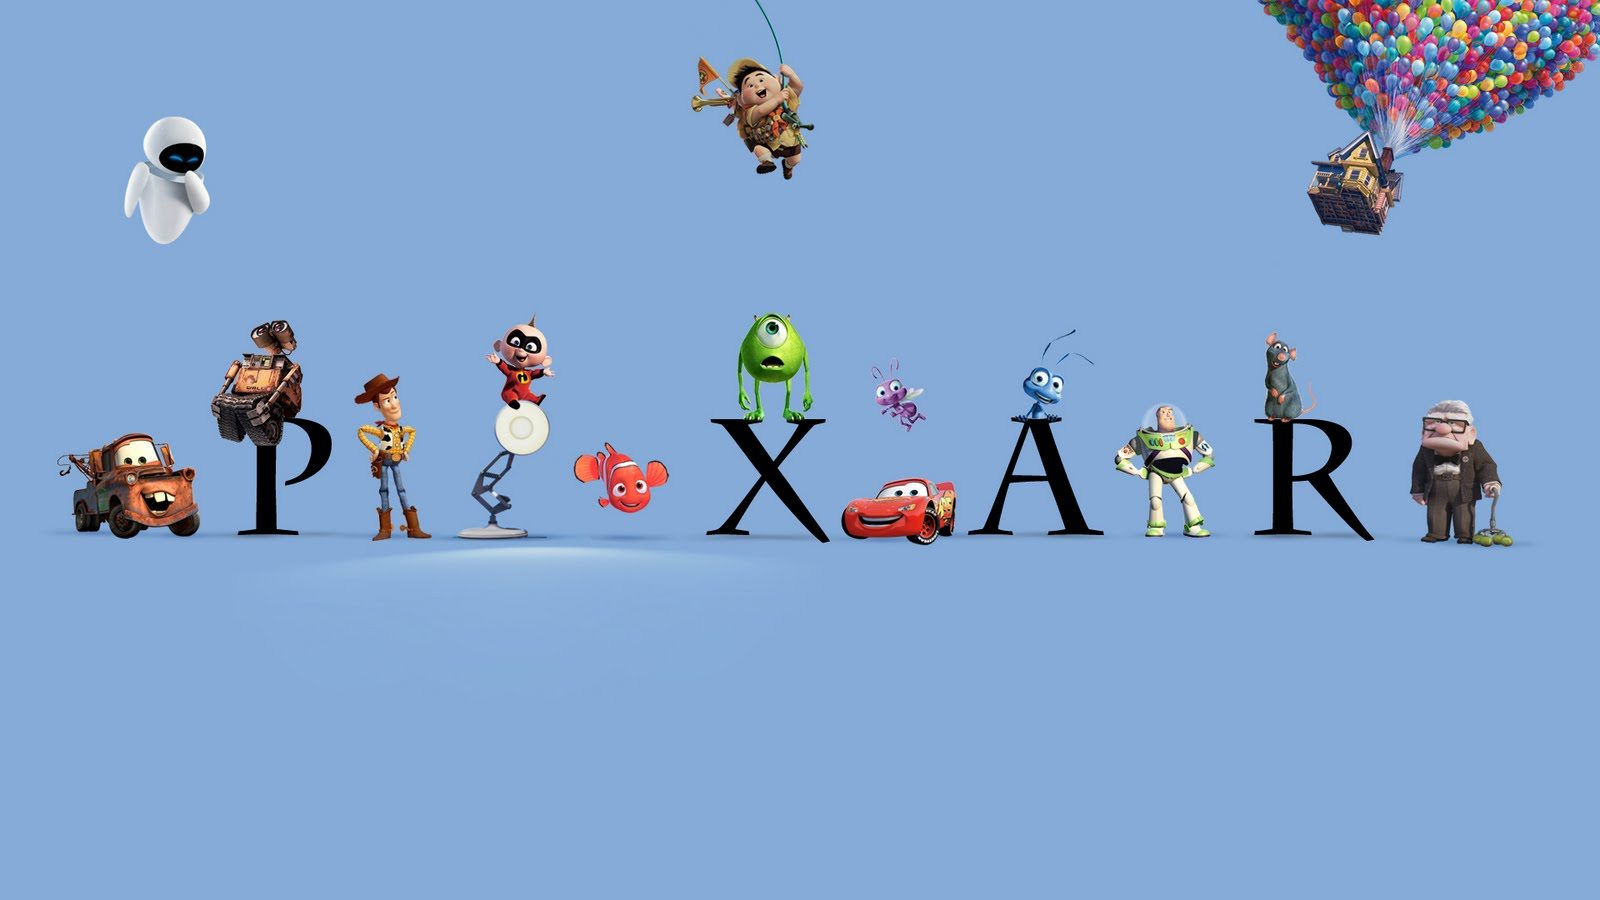 The Pixar Theory by Jon Negroni